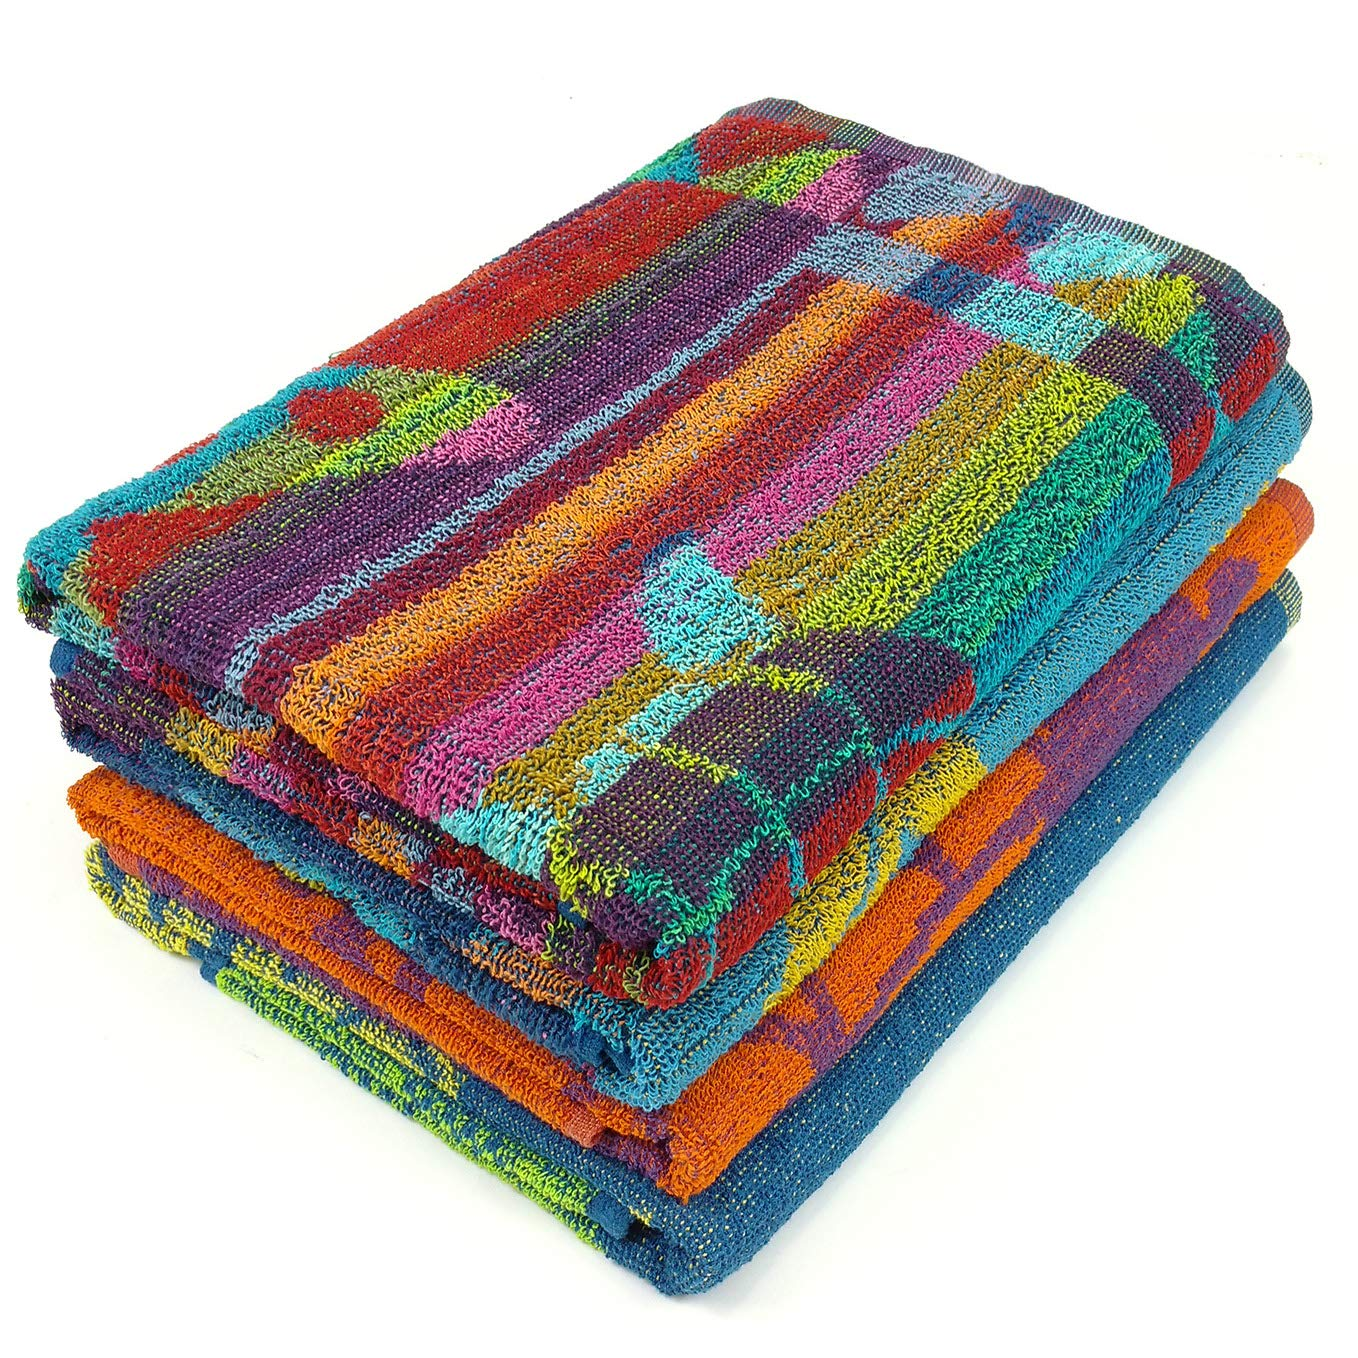 KAUFMAN - Terry Beach & Pool Towel 4-Pack of Assorted Colors - 30in x 60in